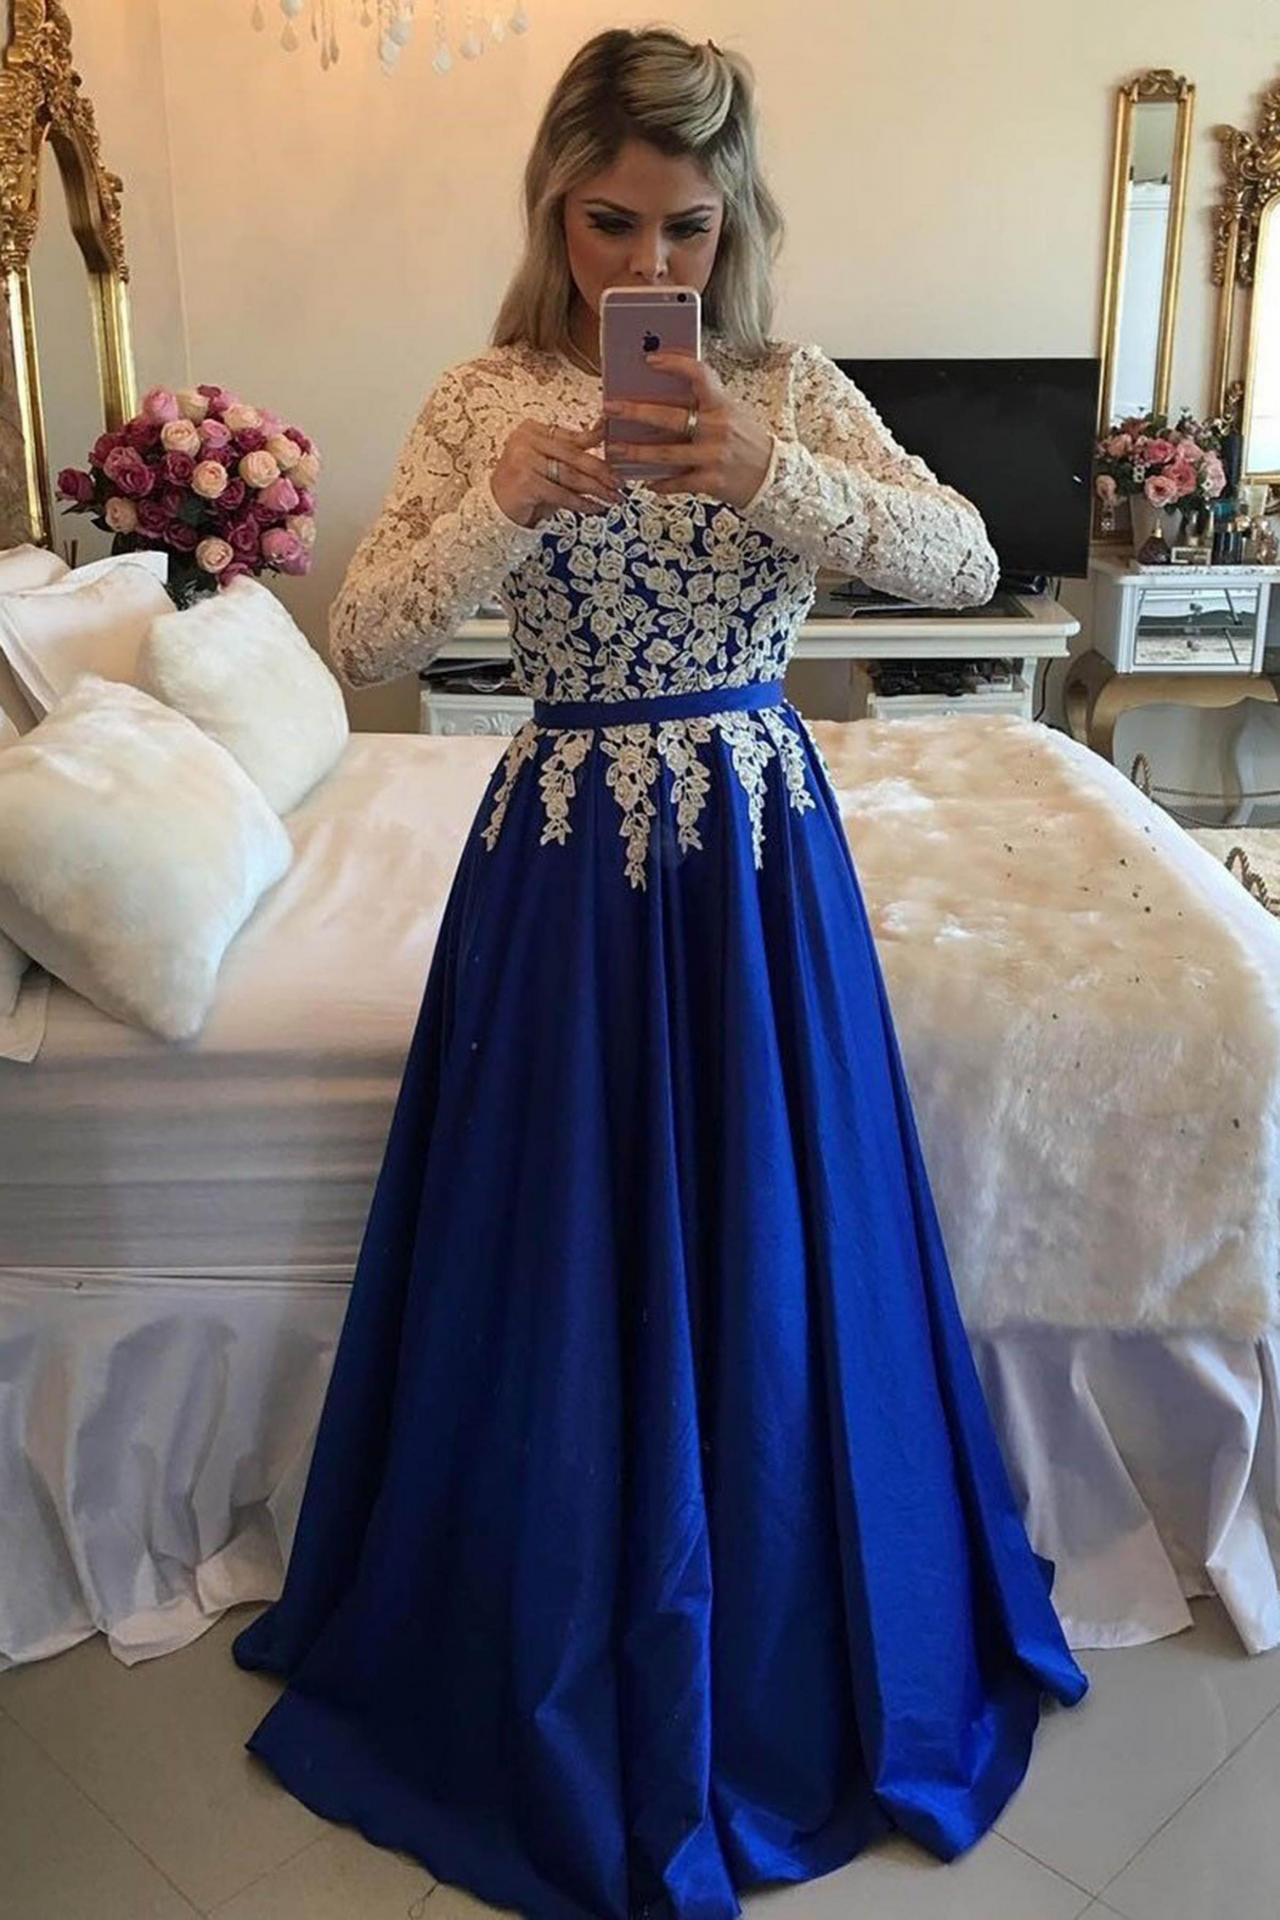 2020 New Arrival A-Line/Princess Satin Royal Blue With White Appliques Long Sleeves Prom Dresses